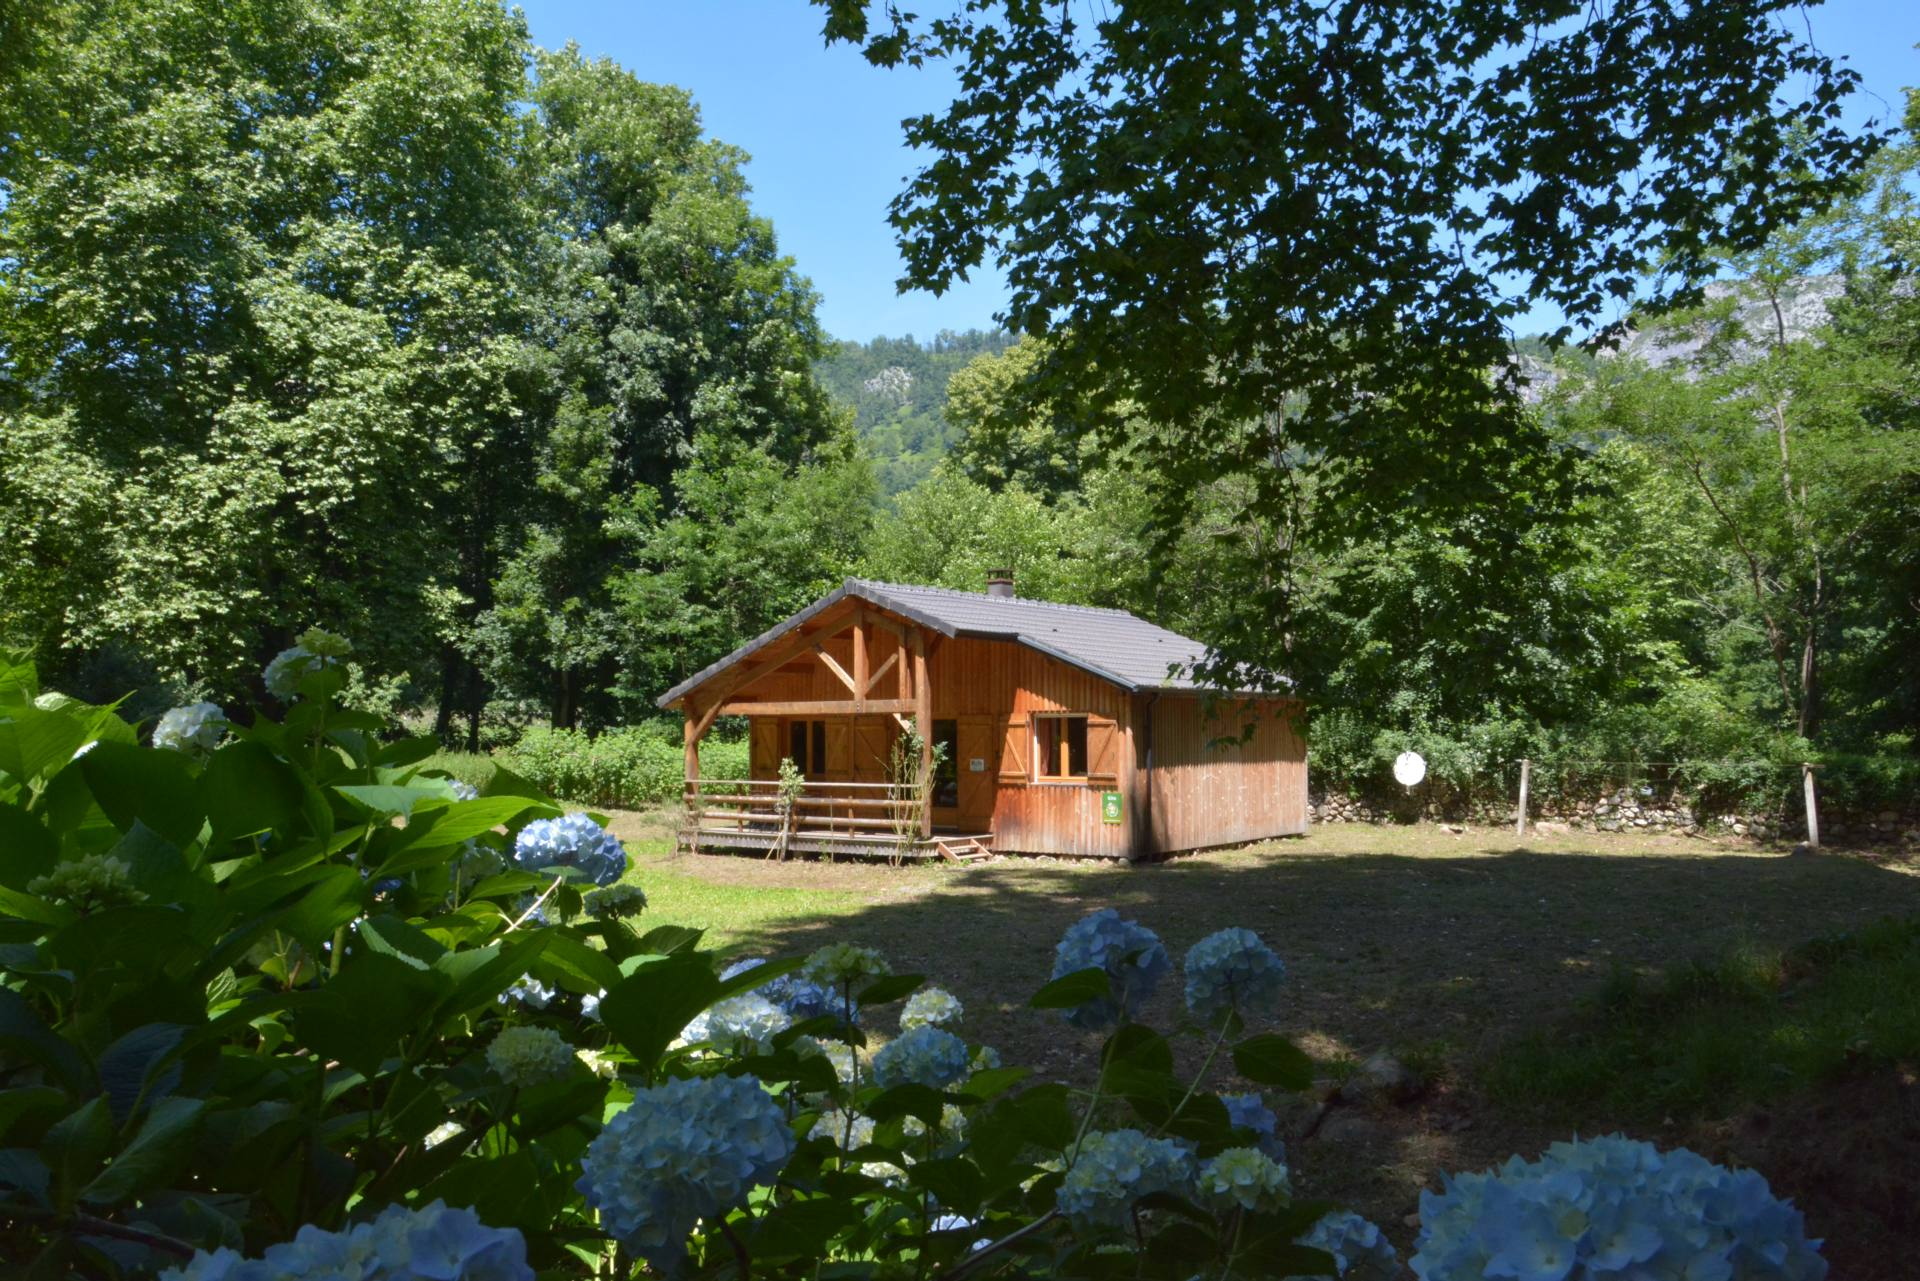 Les forges d 39 enfalits chambres d 39 h tes ari ge pyrenees for Chambre d hotes pyrenees